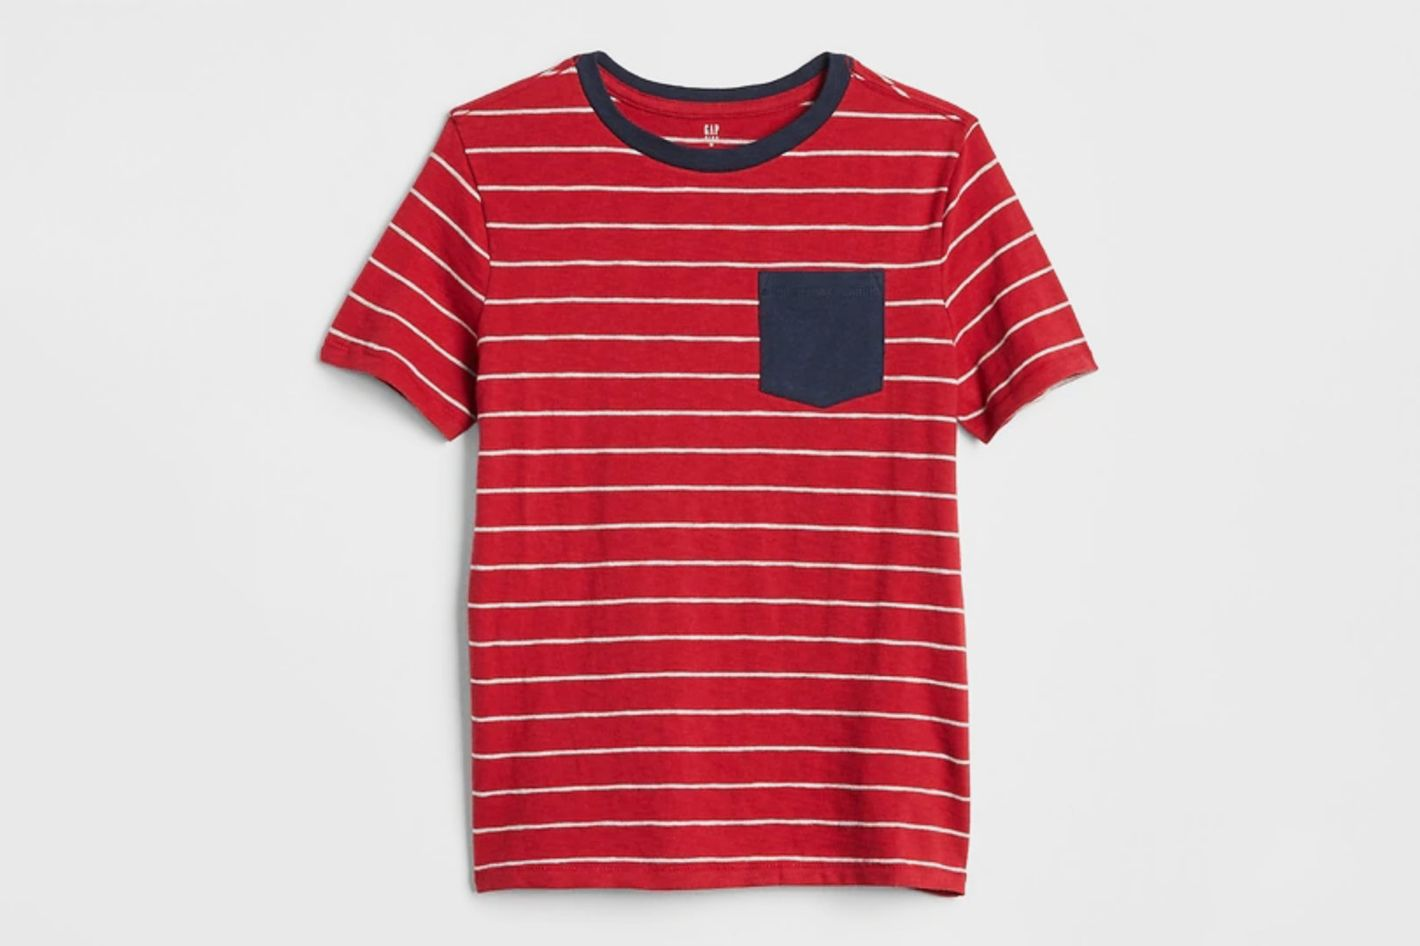 4f3bc7952 15 Best Kids' T-Shirts, According to Stylish Parents: 2018